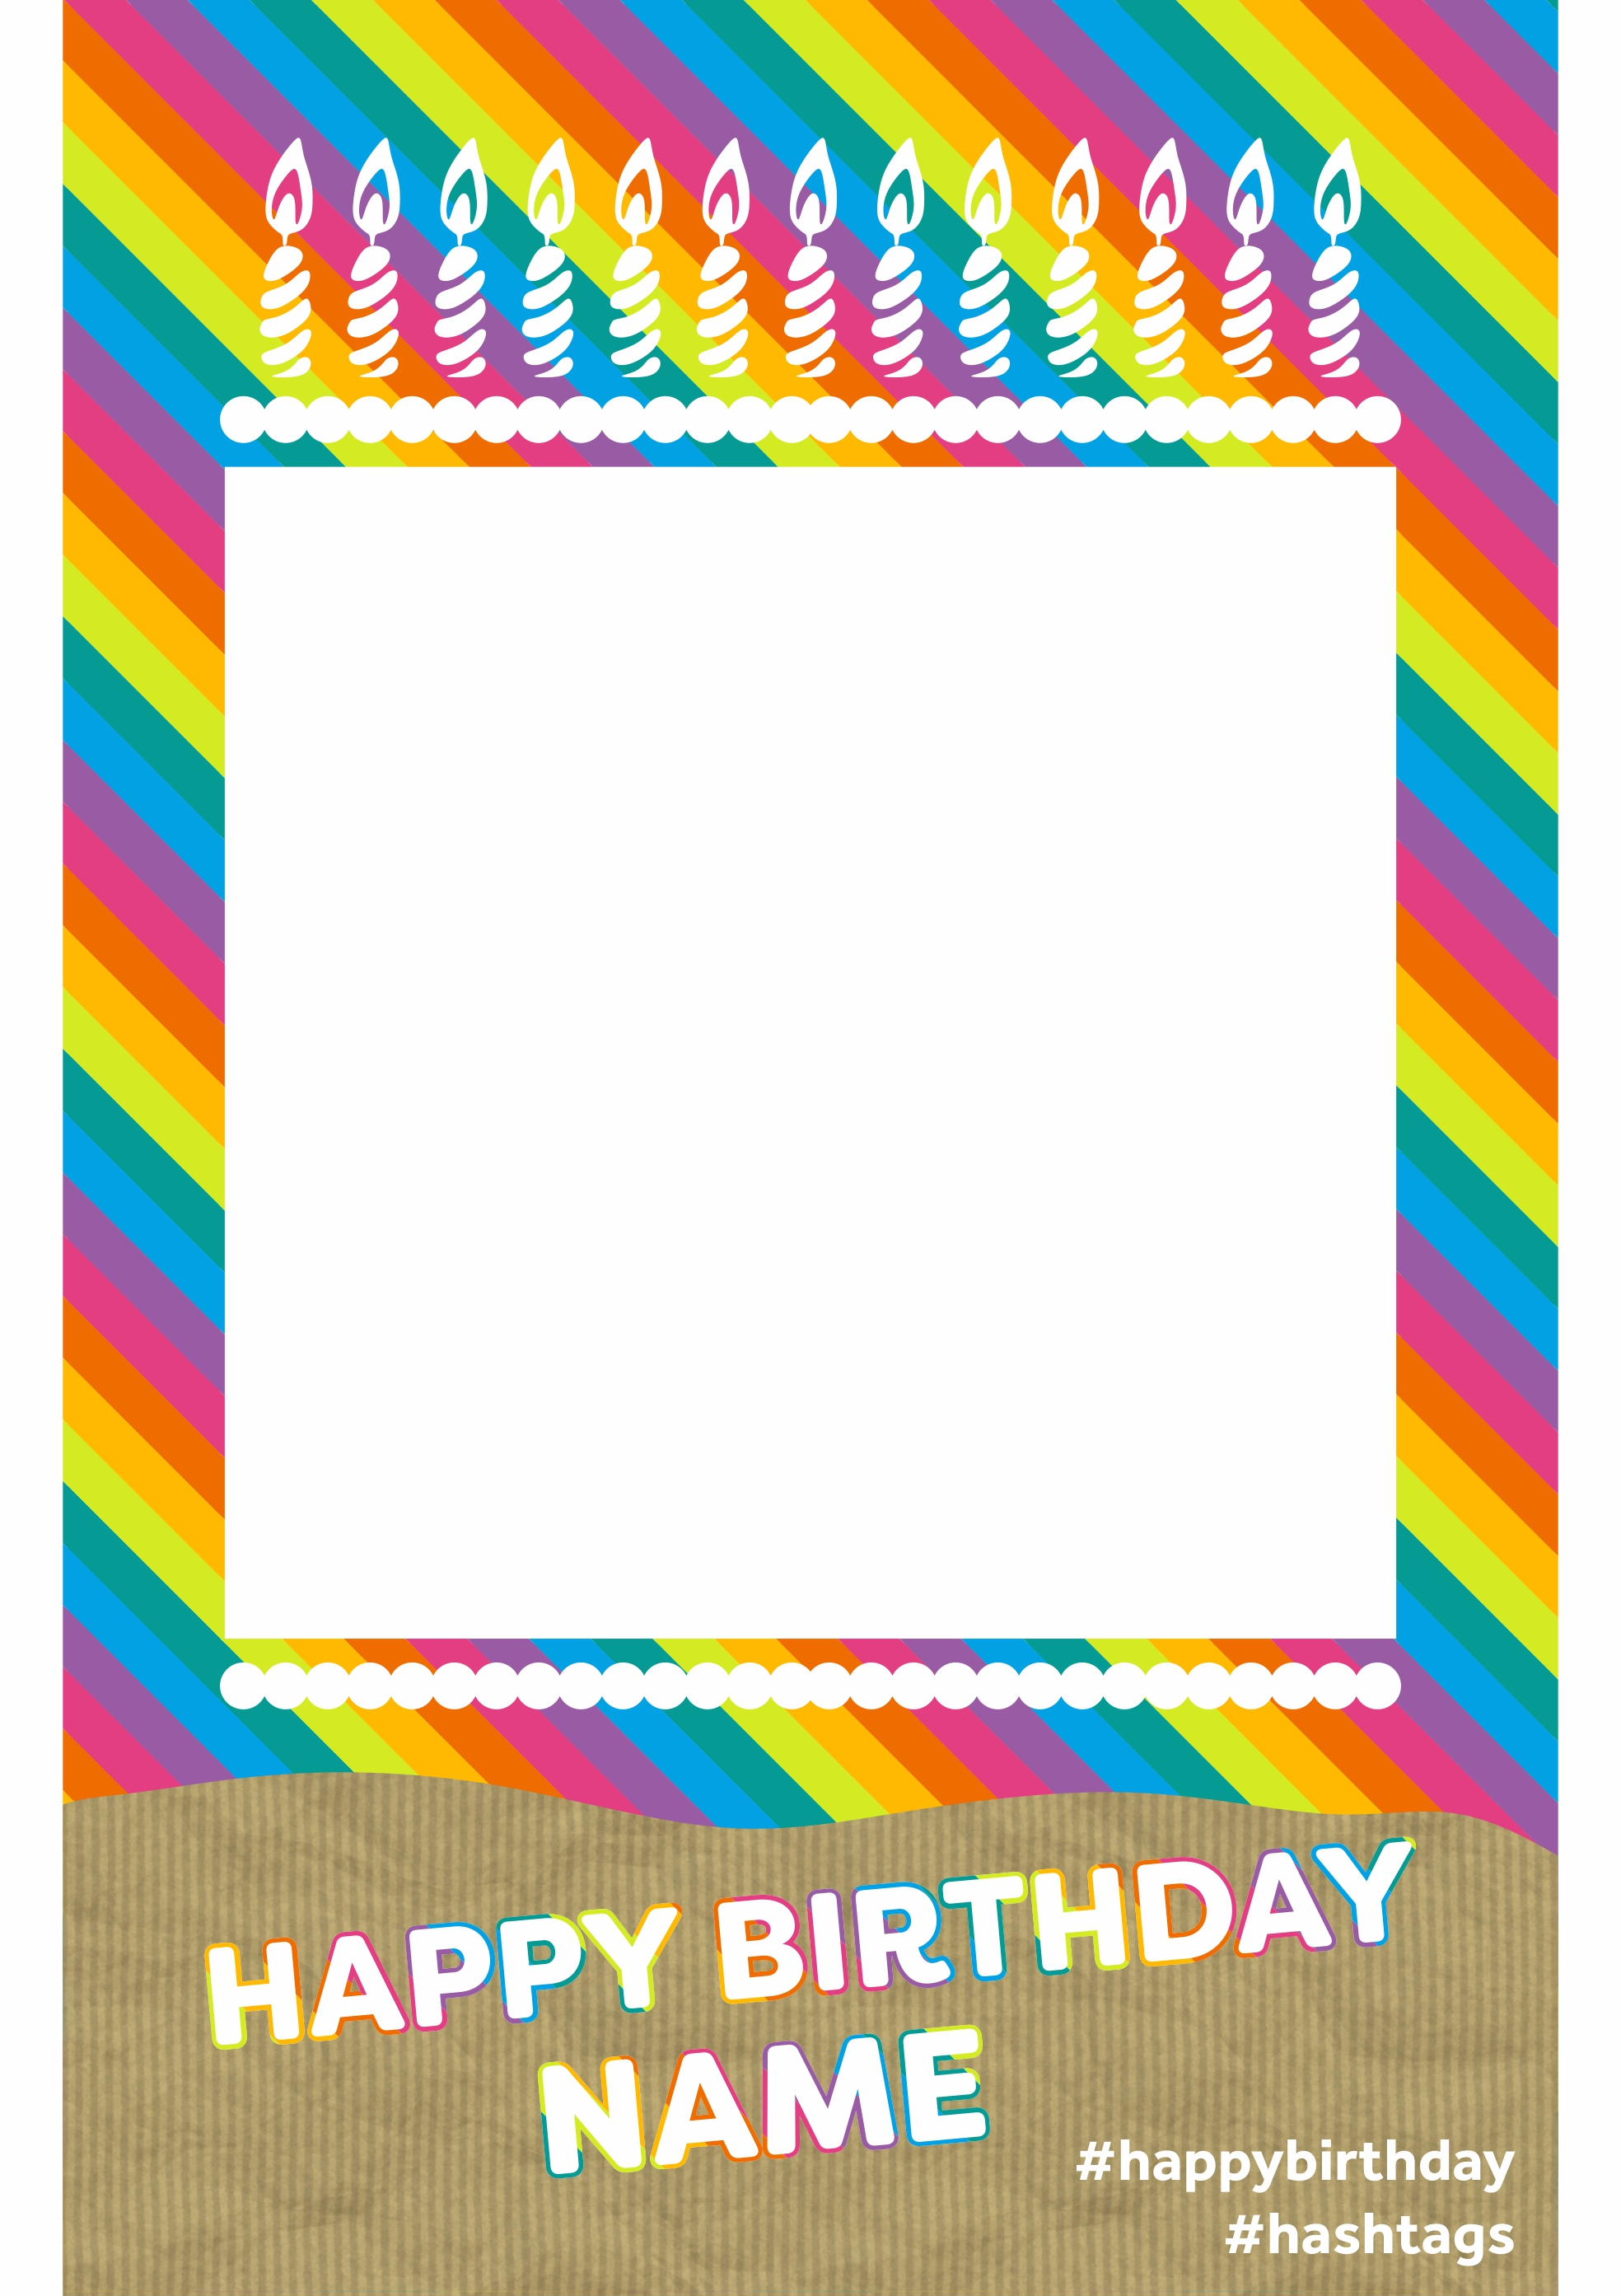 Rainbow Birthday Theme image